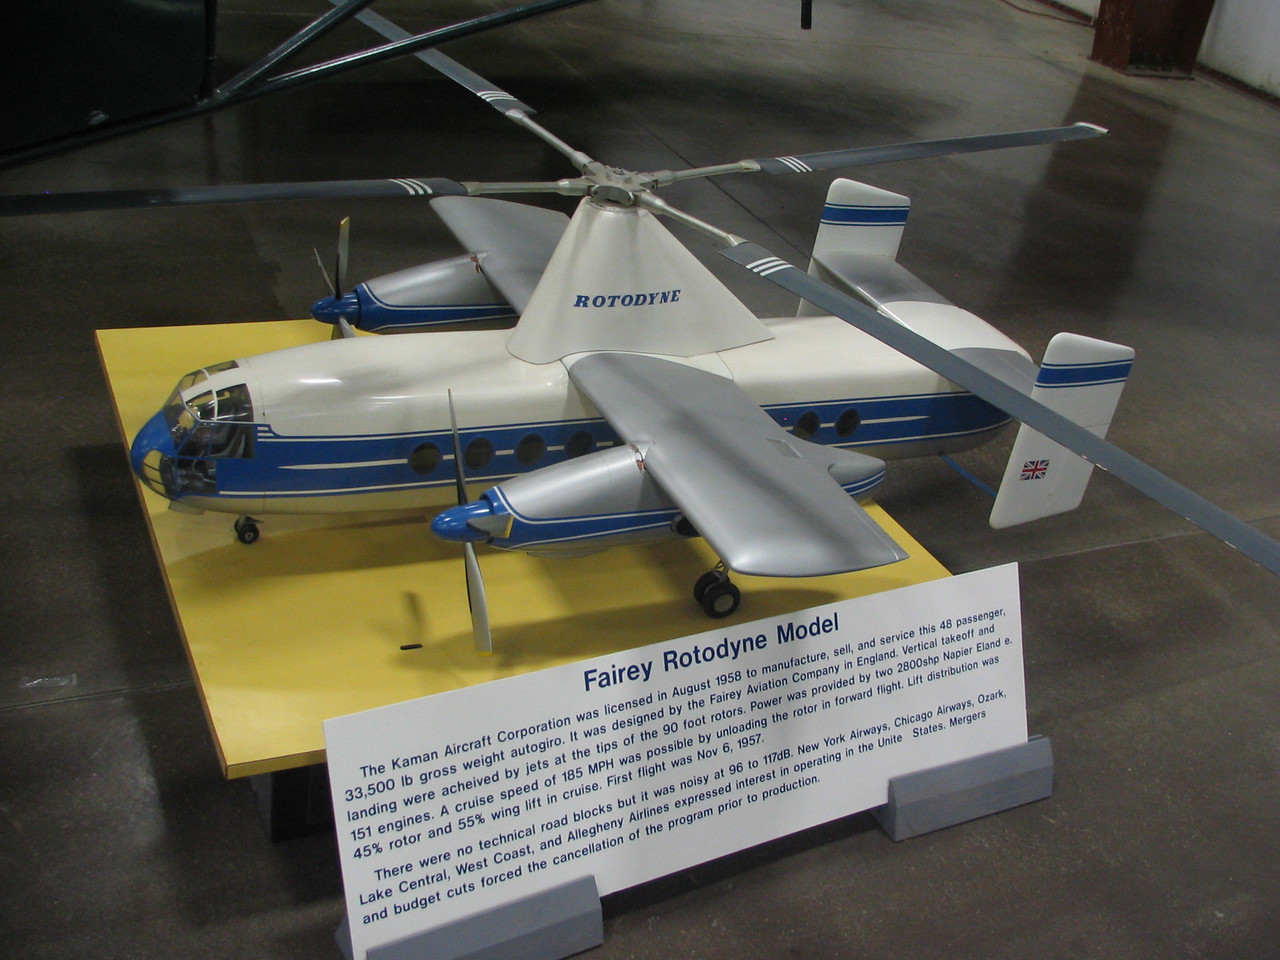 Kaman-Fairey Rotodyne model. This was a concept presented to several airlines as an alternative to propeller-driven airplanes. This autogiro could take off and land at airports that larger aircraft could not. It held 48 passengers. Mergers and budget cuts prevented the Fairey design from reaching production.